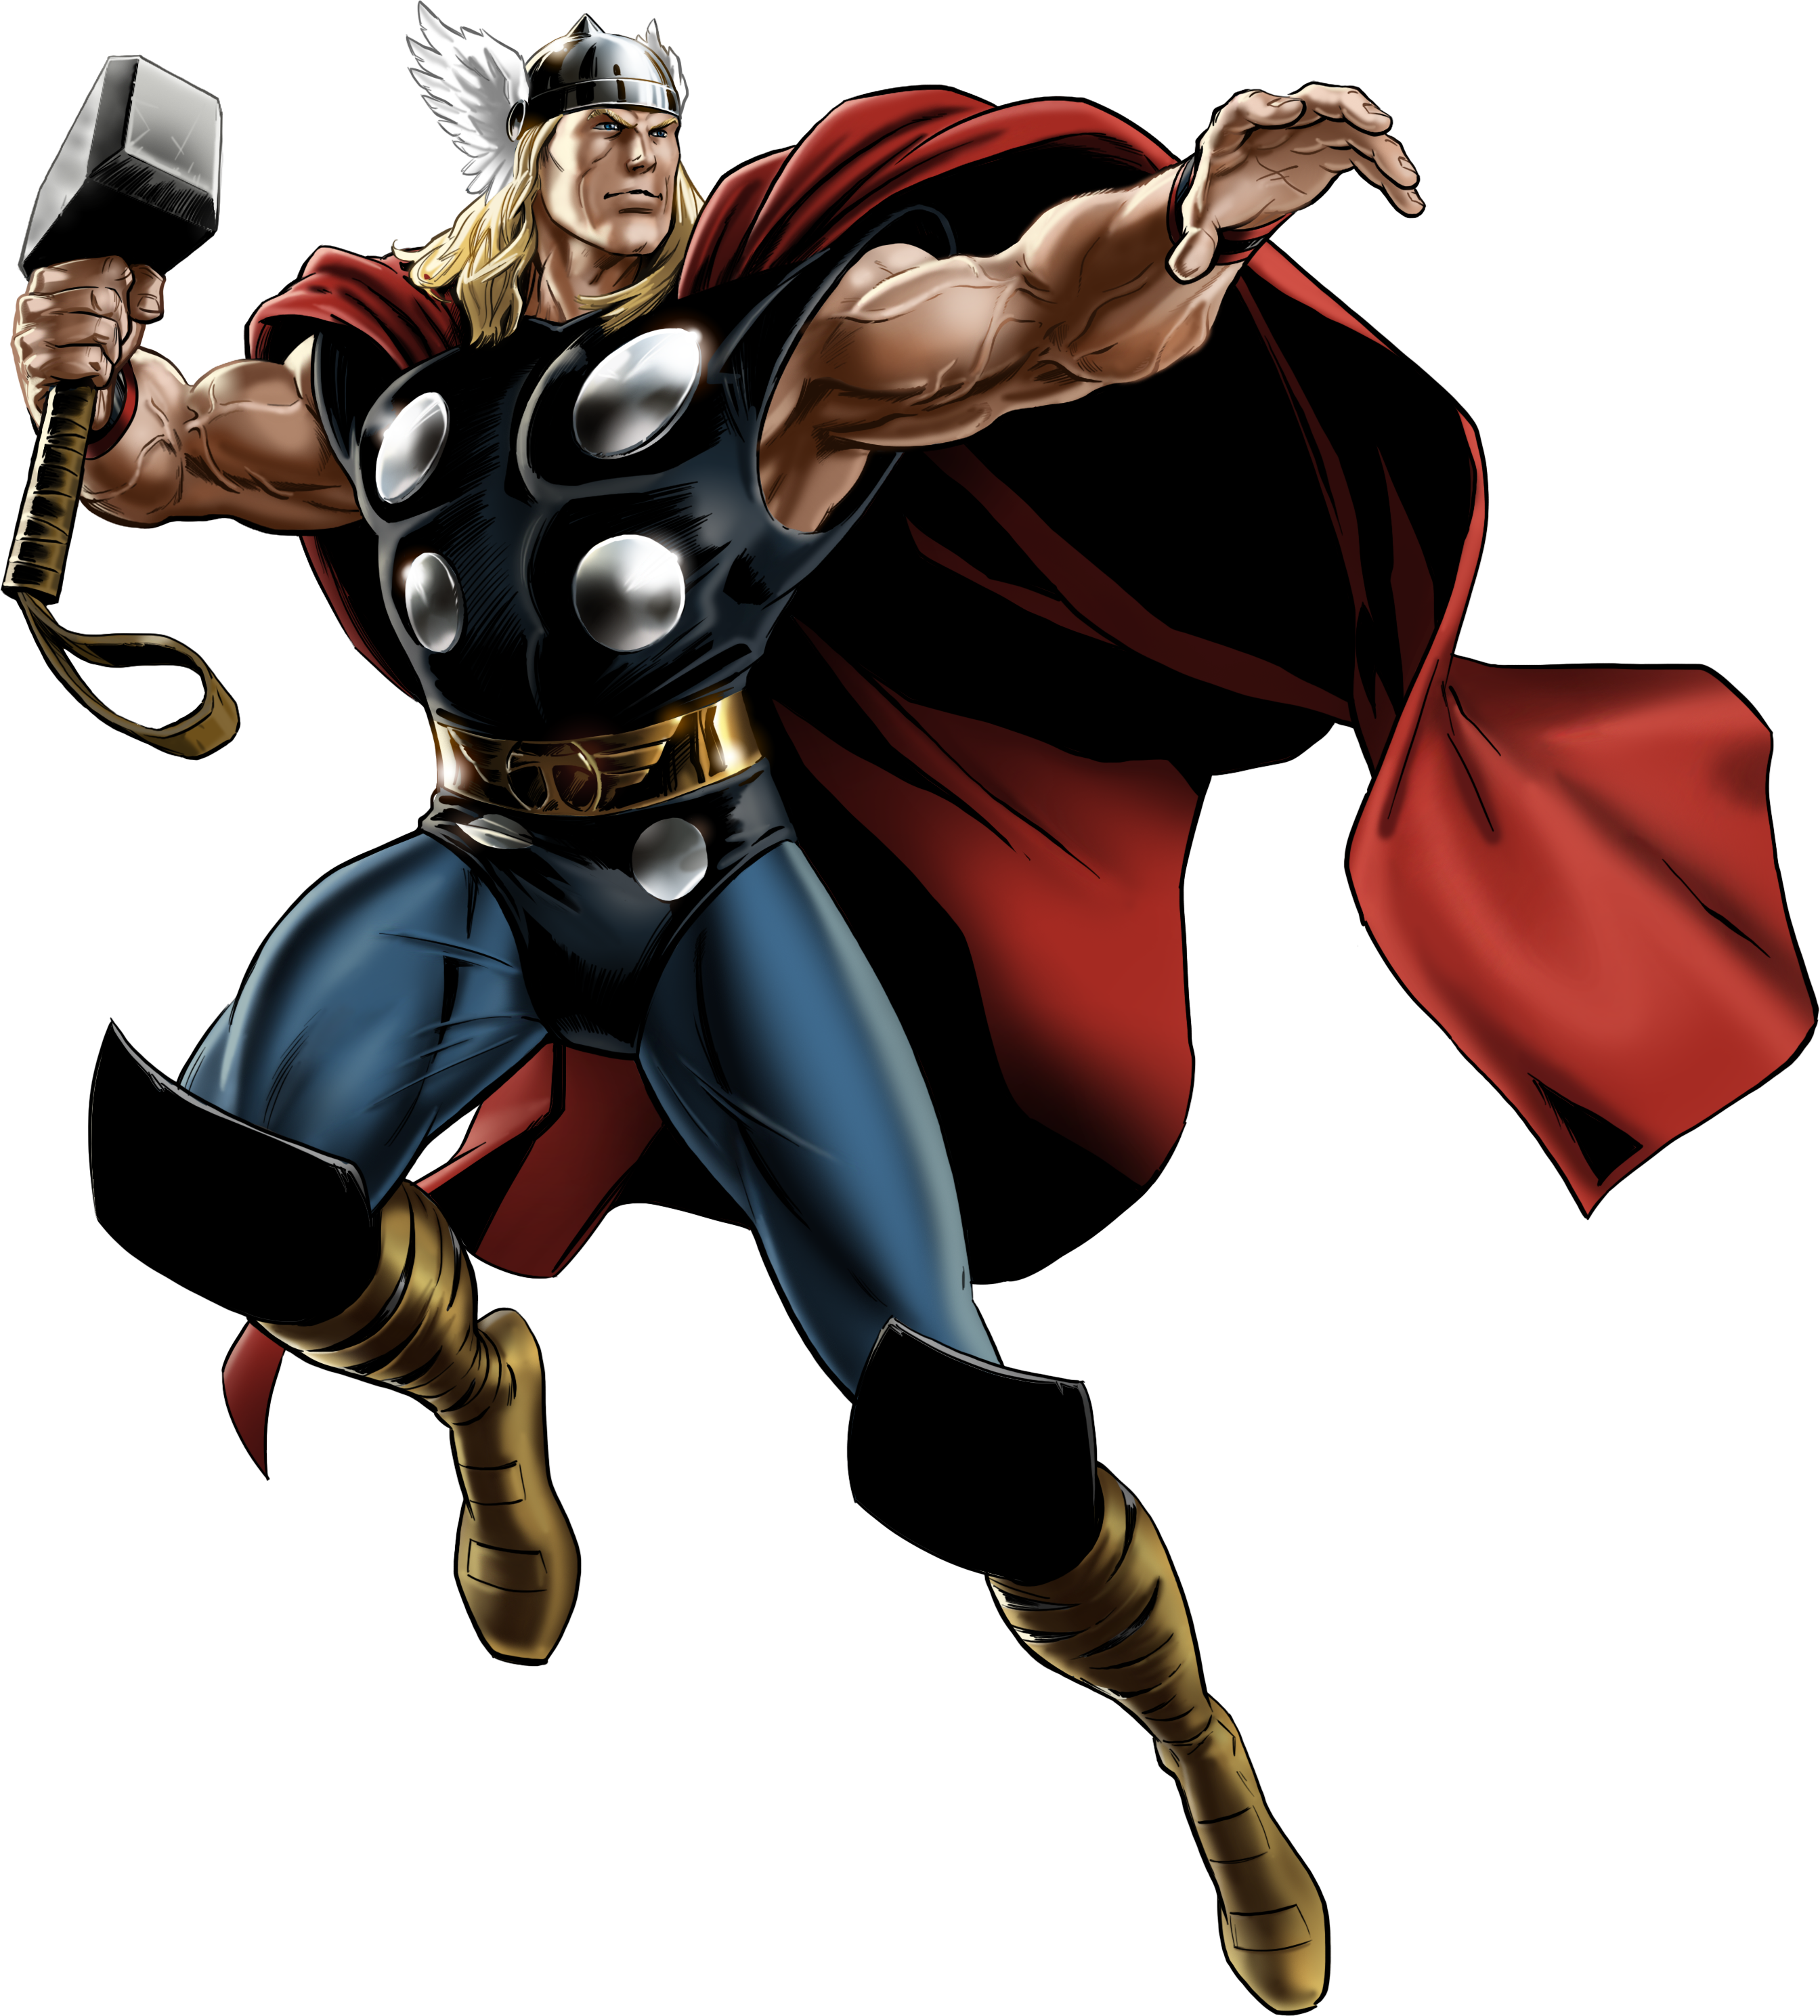 Marvel comic book clipart banner free download Marvel Avengers Alliance Thor Classic by ratatrampa87.deviantart.com ... banner free download